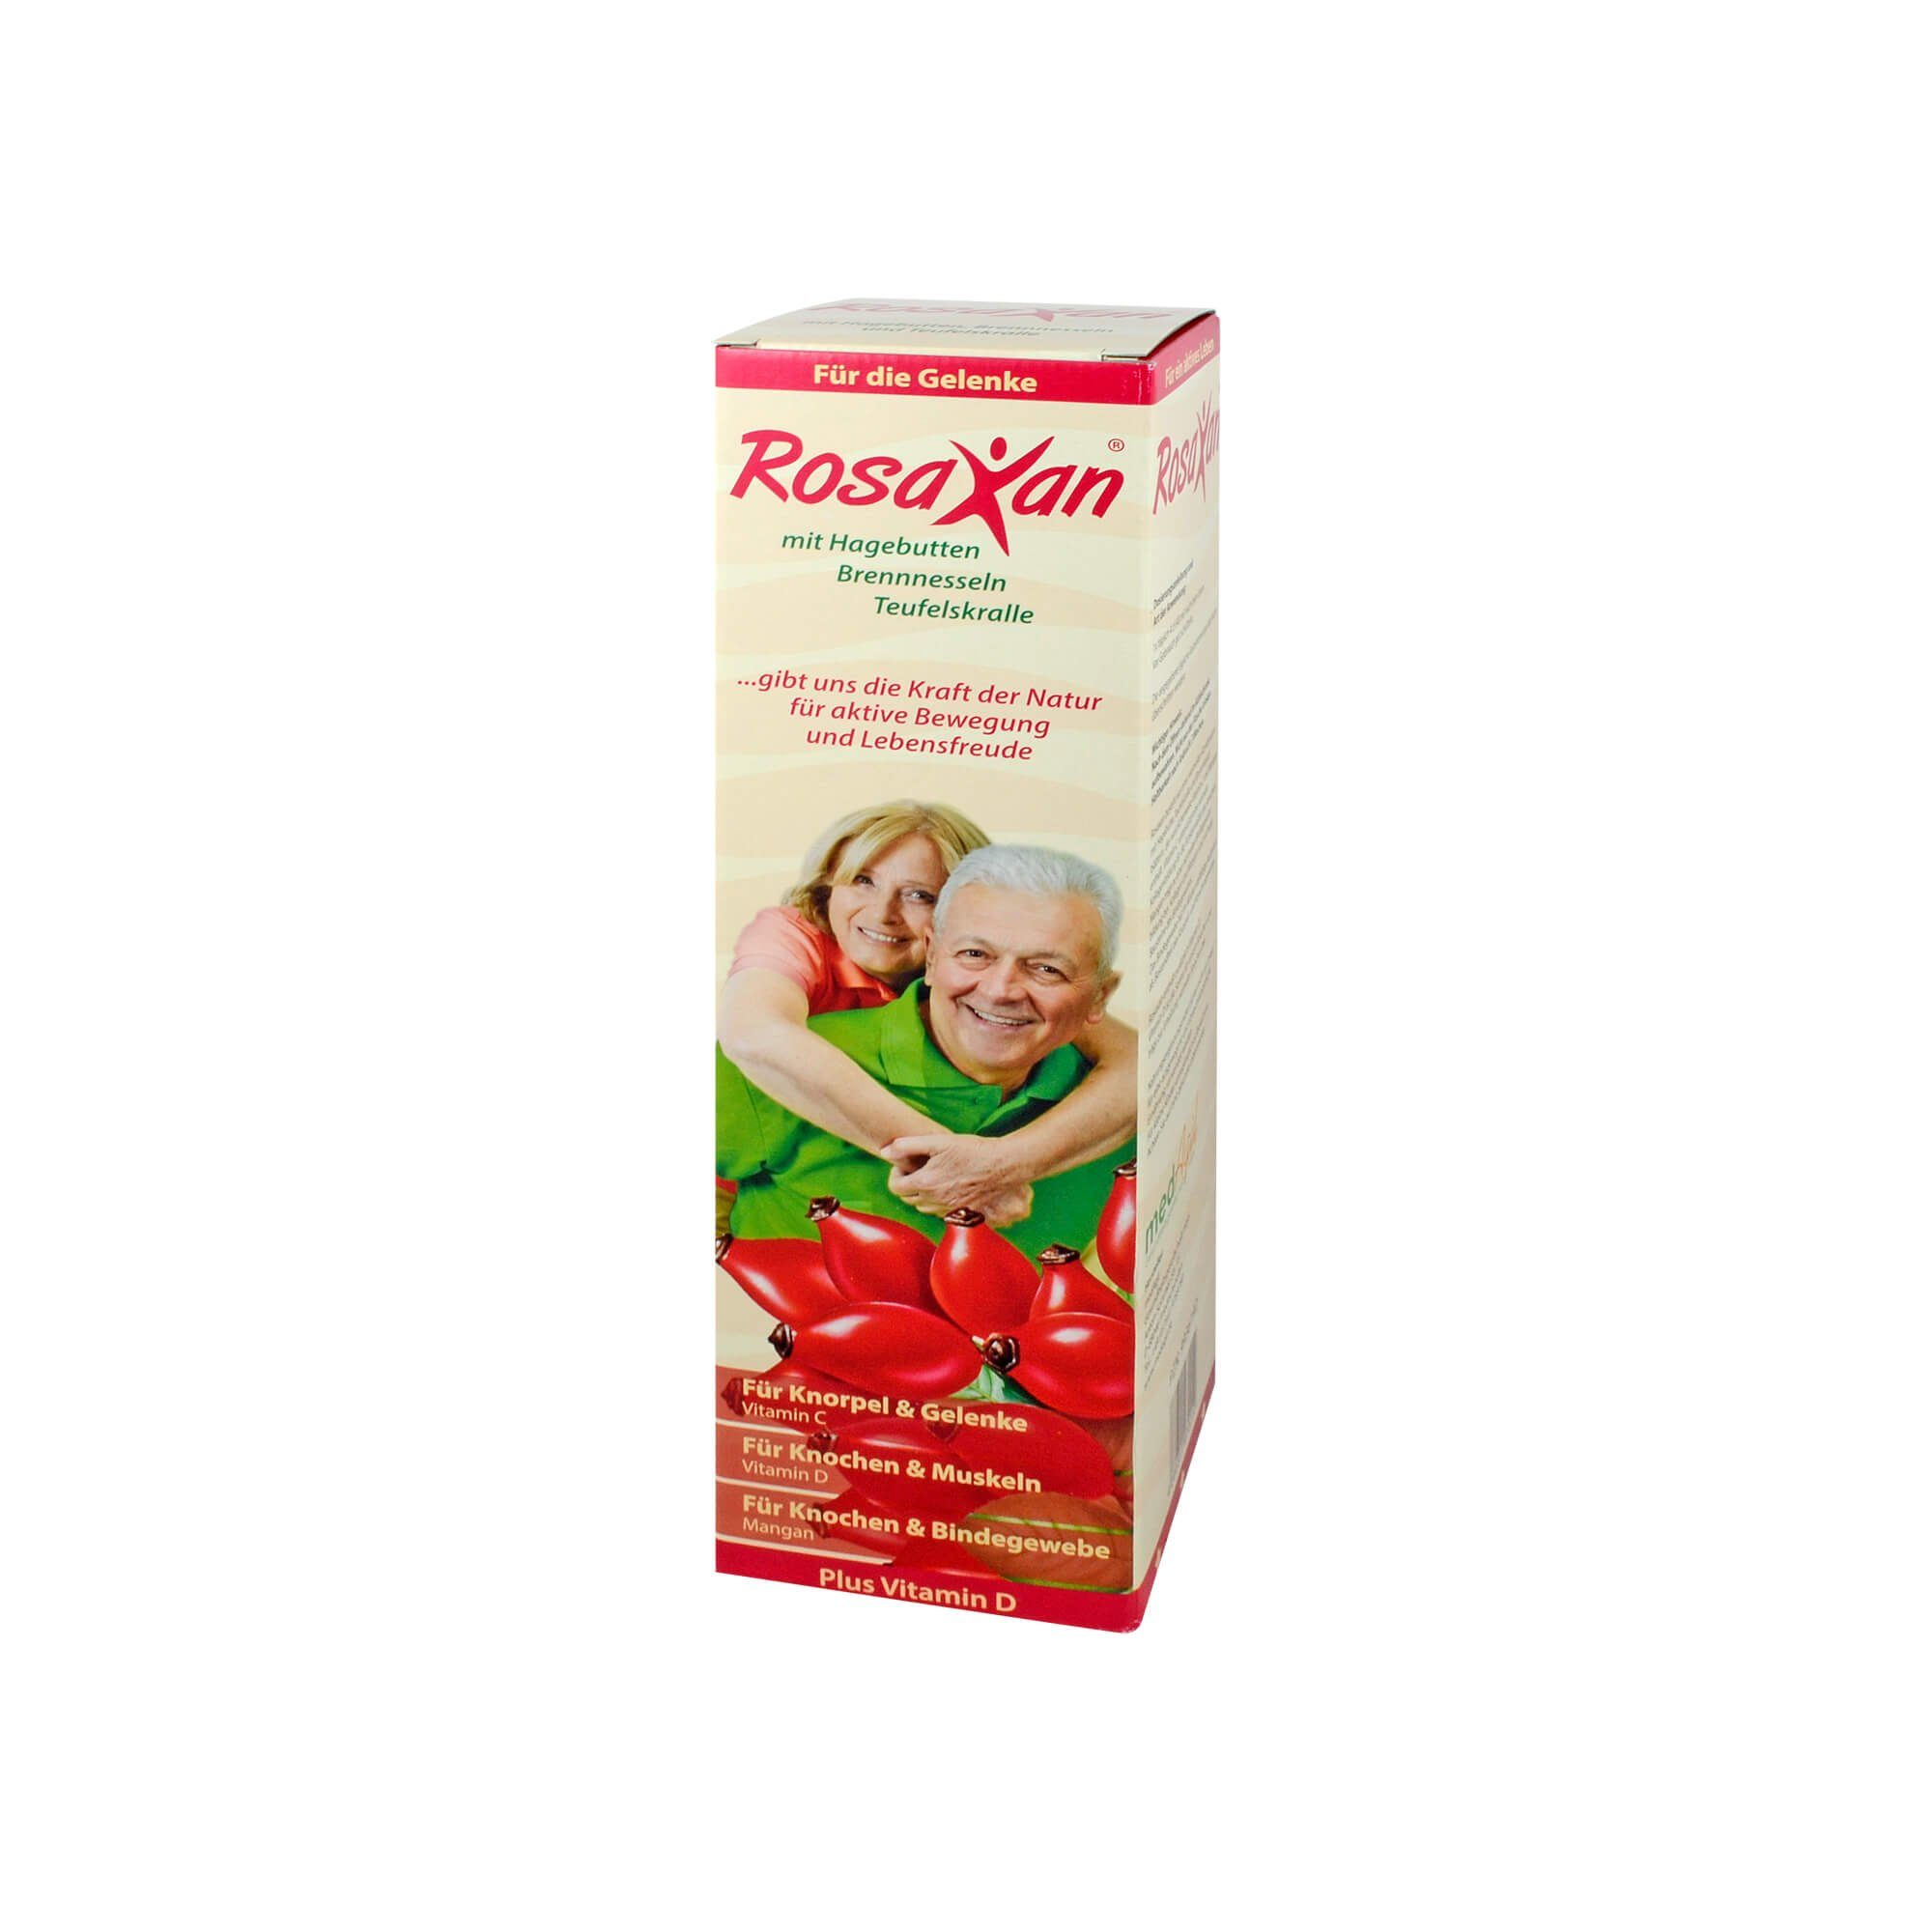 Rosaxan plus Vitamin D , 750 ml